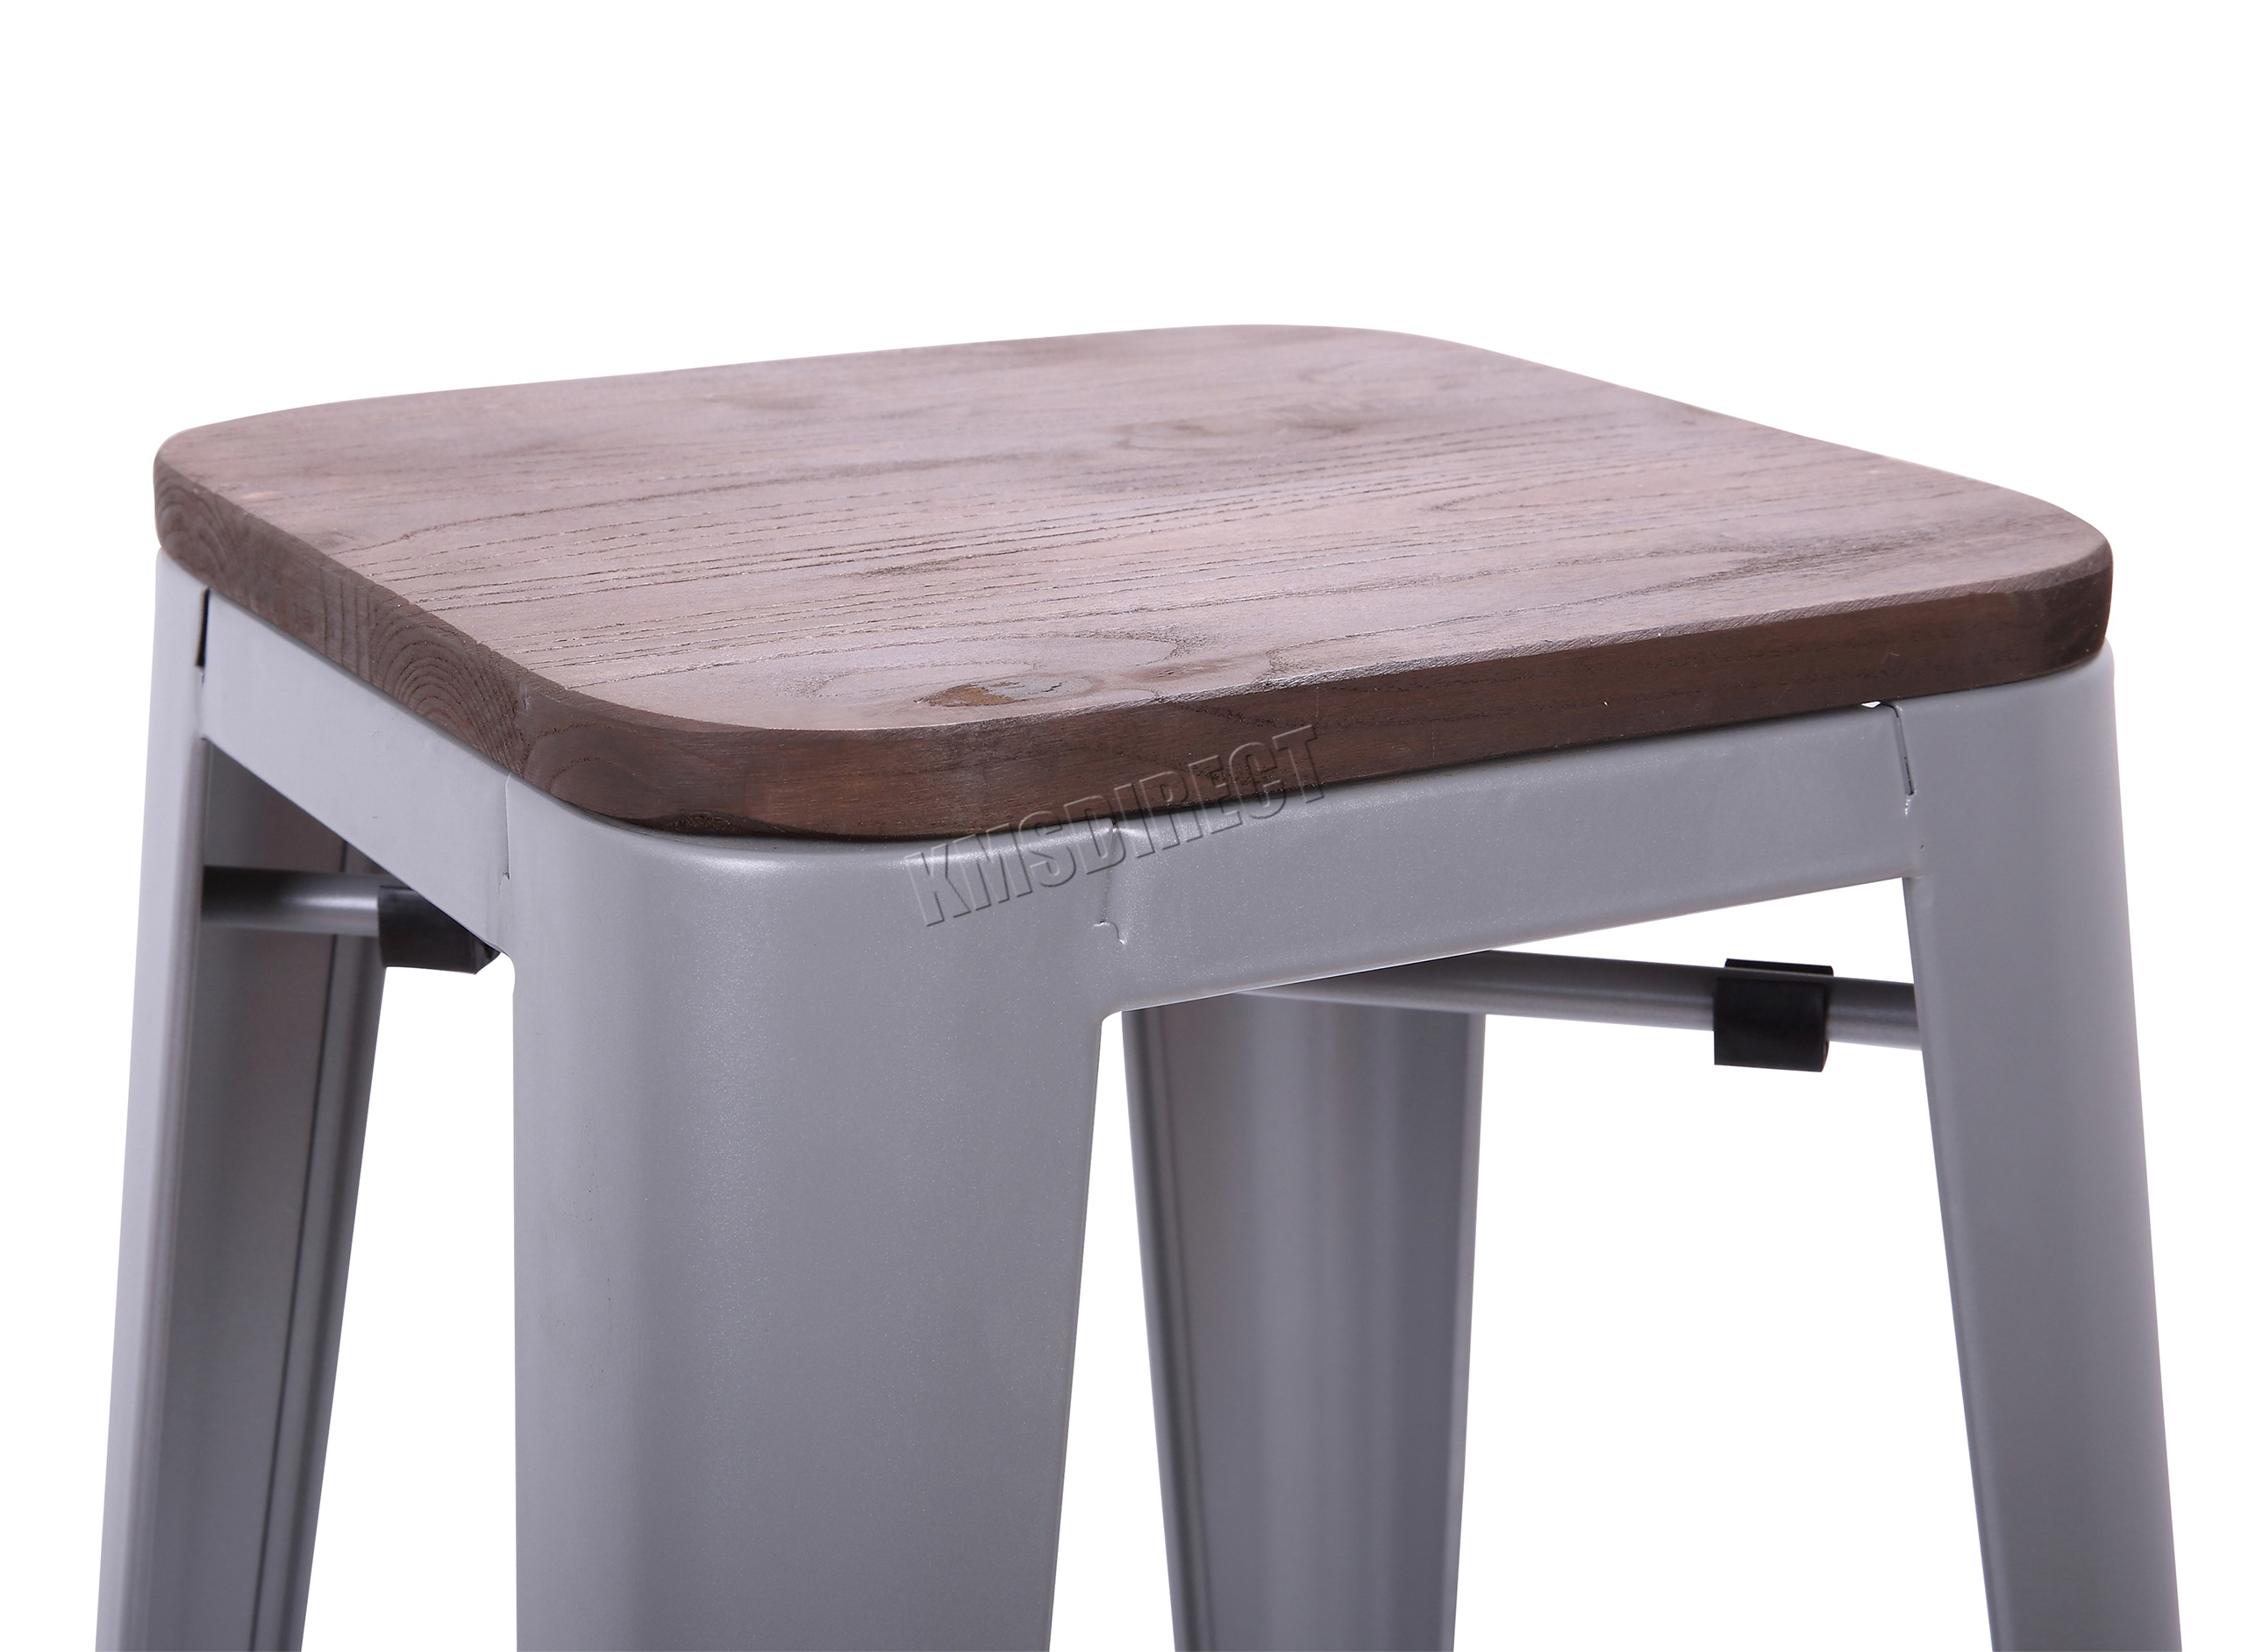 Foxhunter 2 4 metal tolix vintage bar dining stool chair with wood